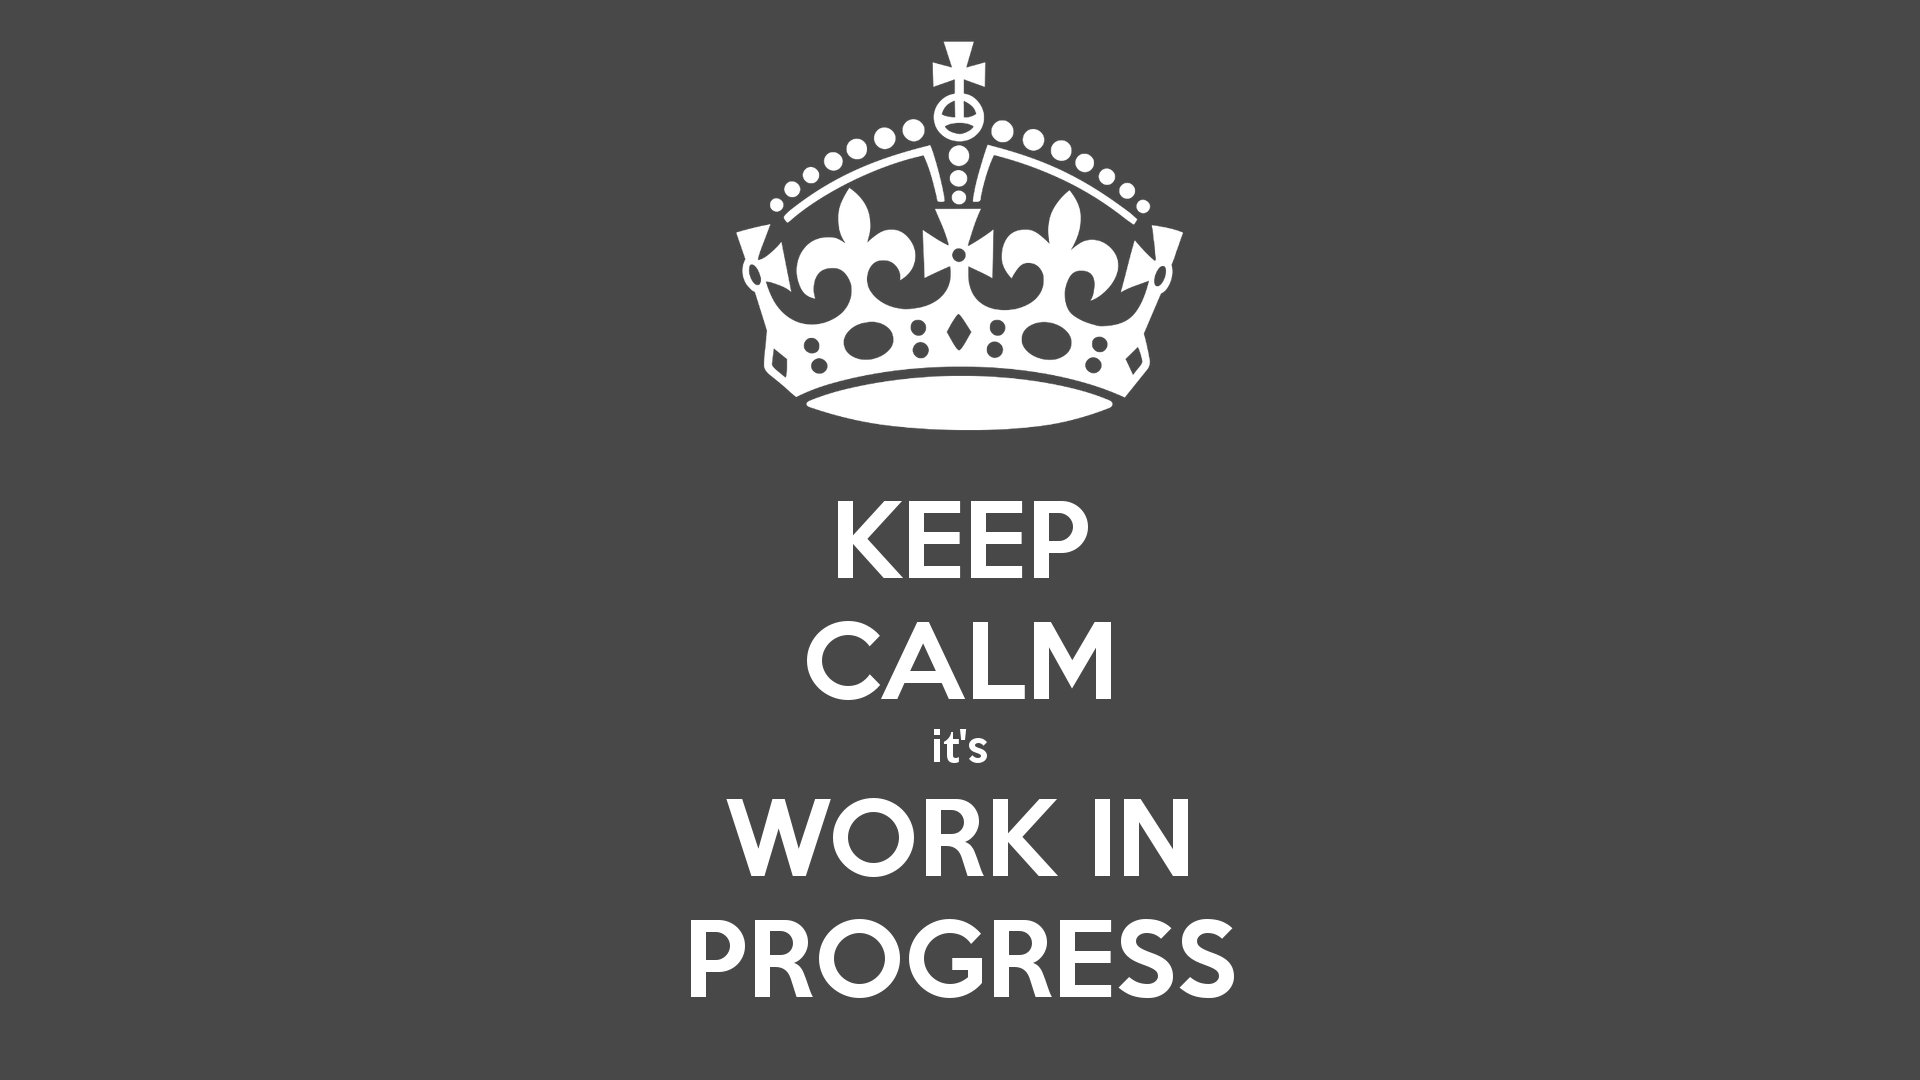 keep-calm-it-s-work-in-progress-1